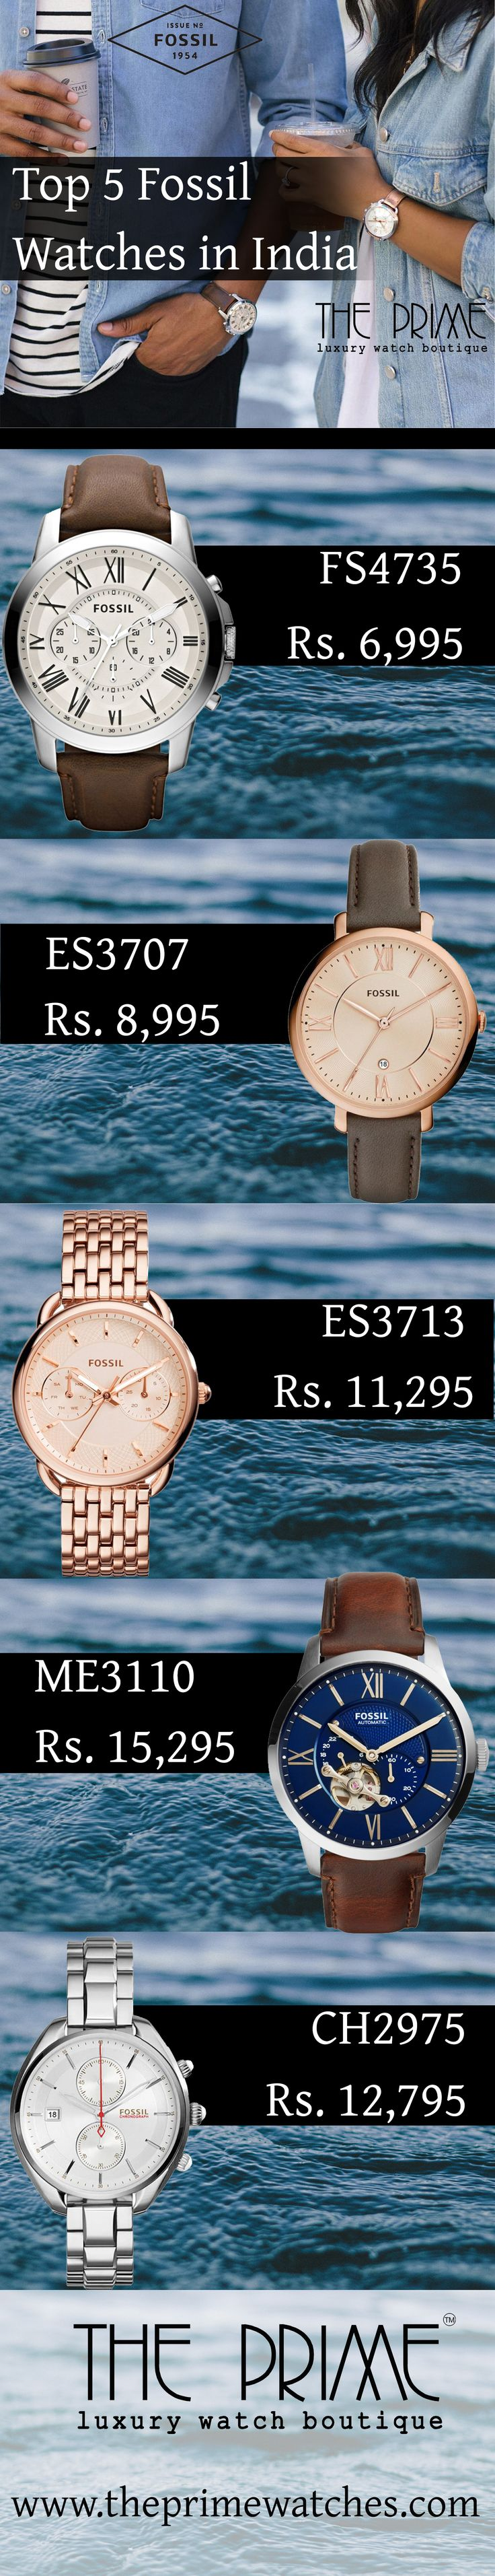 Fossil is a fashion watch brand whose watches are widely available in India and also loved by its watch users. This content presents some magnificent Fossil watches that are accessible in India. Fossil, one of the dominating watch brand in India has wide collections of watches in its store. From this content, you will get a glimpse of some Fossil watches that are stylish and effective. These watches are ruling the Indian watch market.